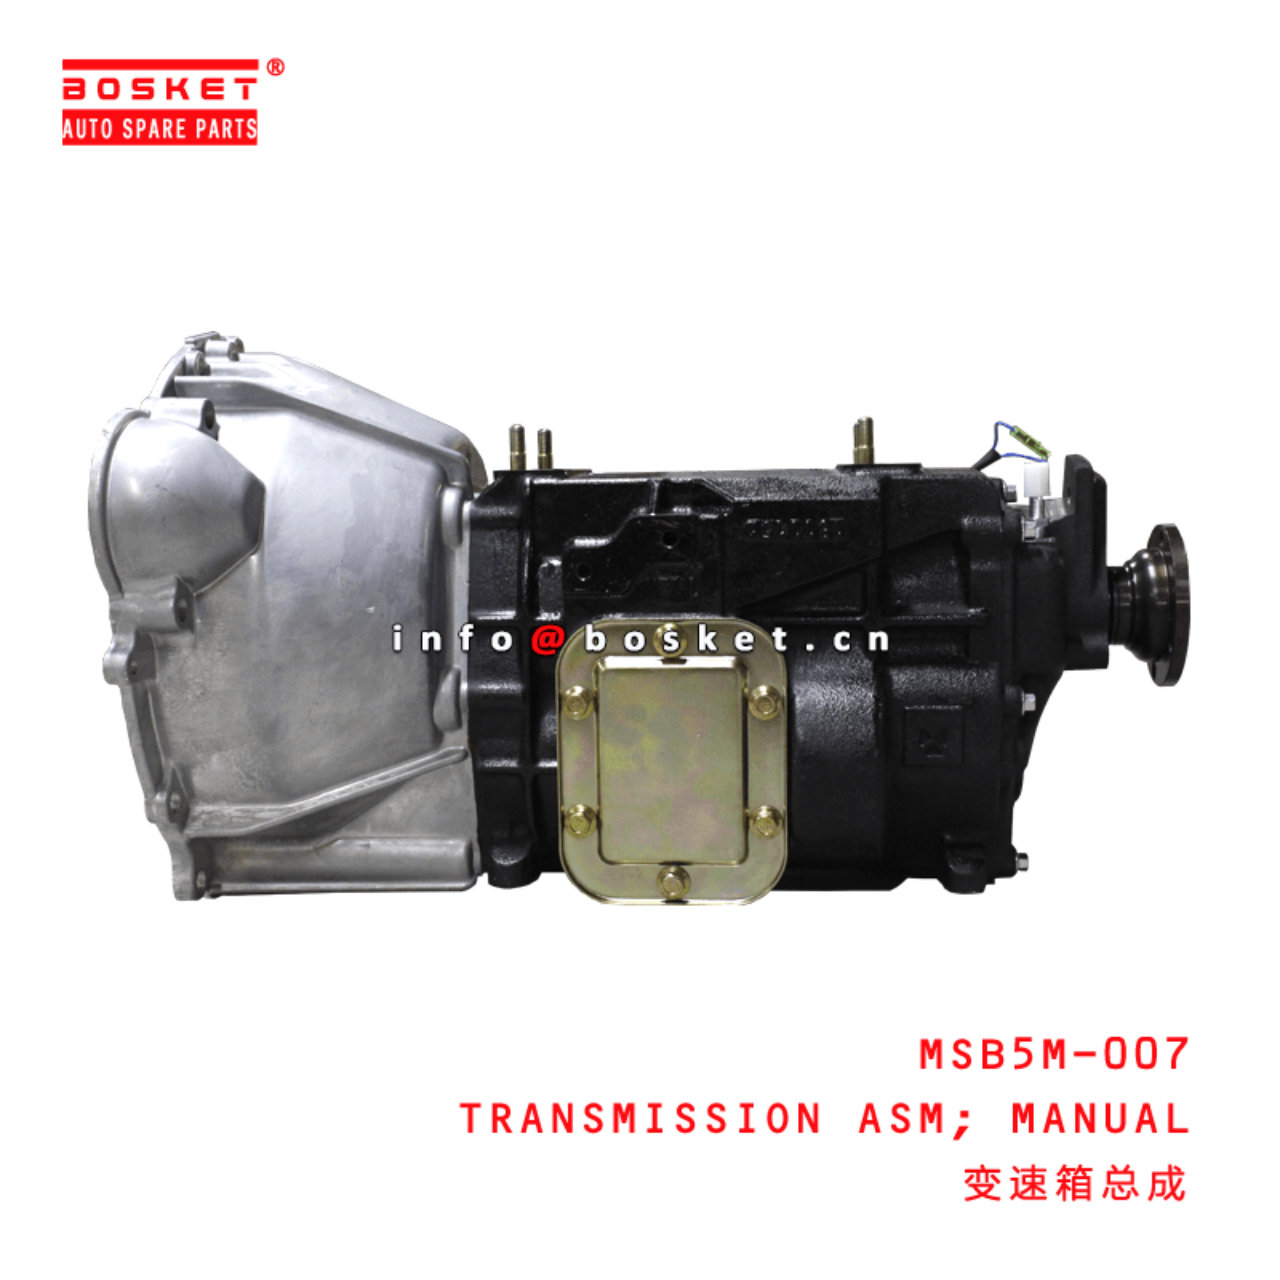 MSB5M-007 Manual Transmission Assembly MSB5M007 S...